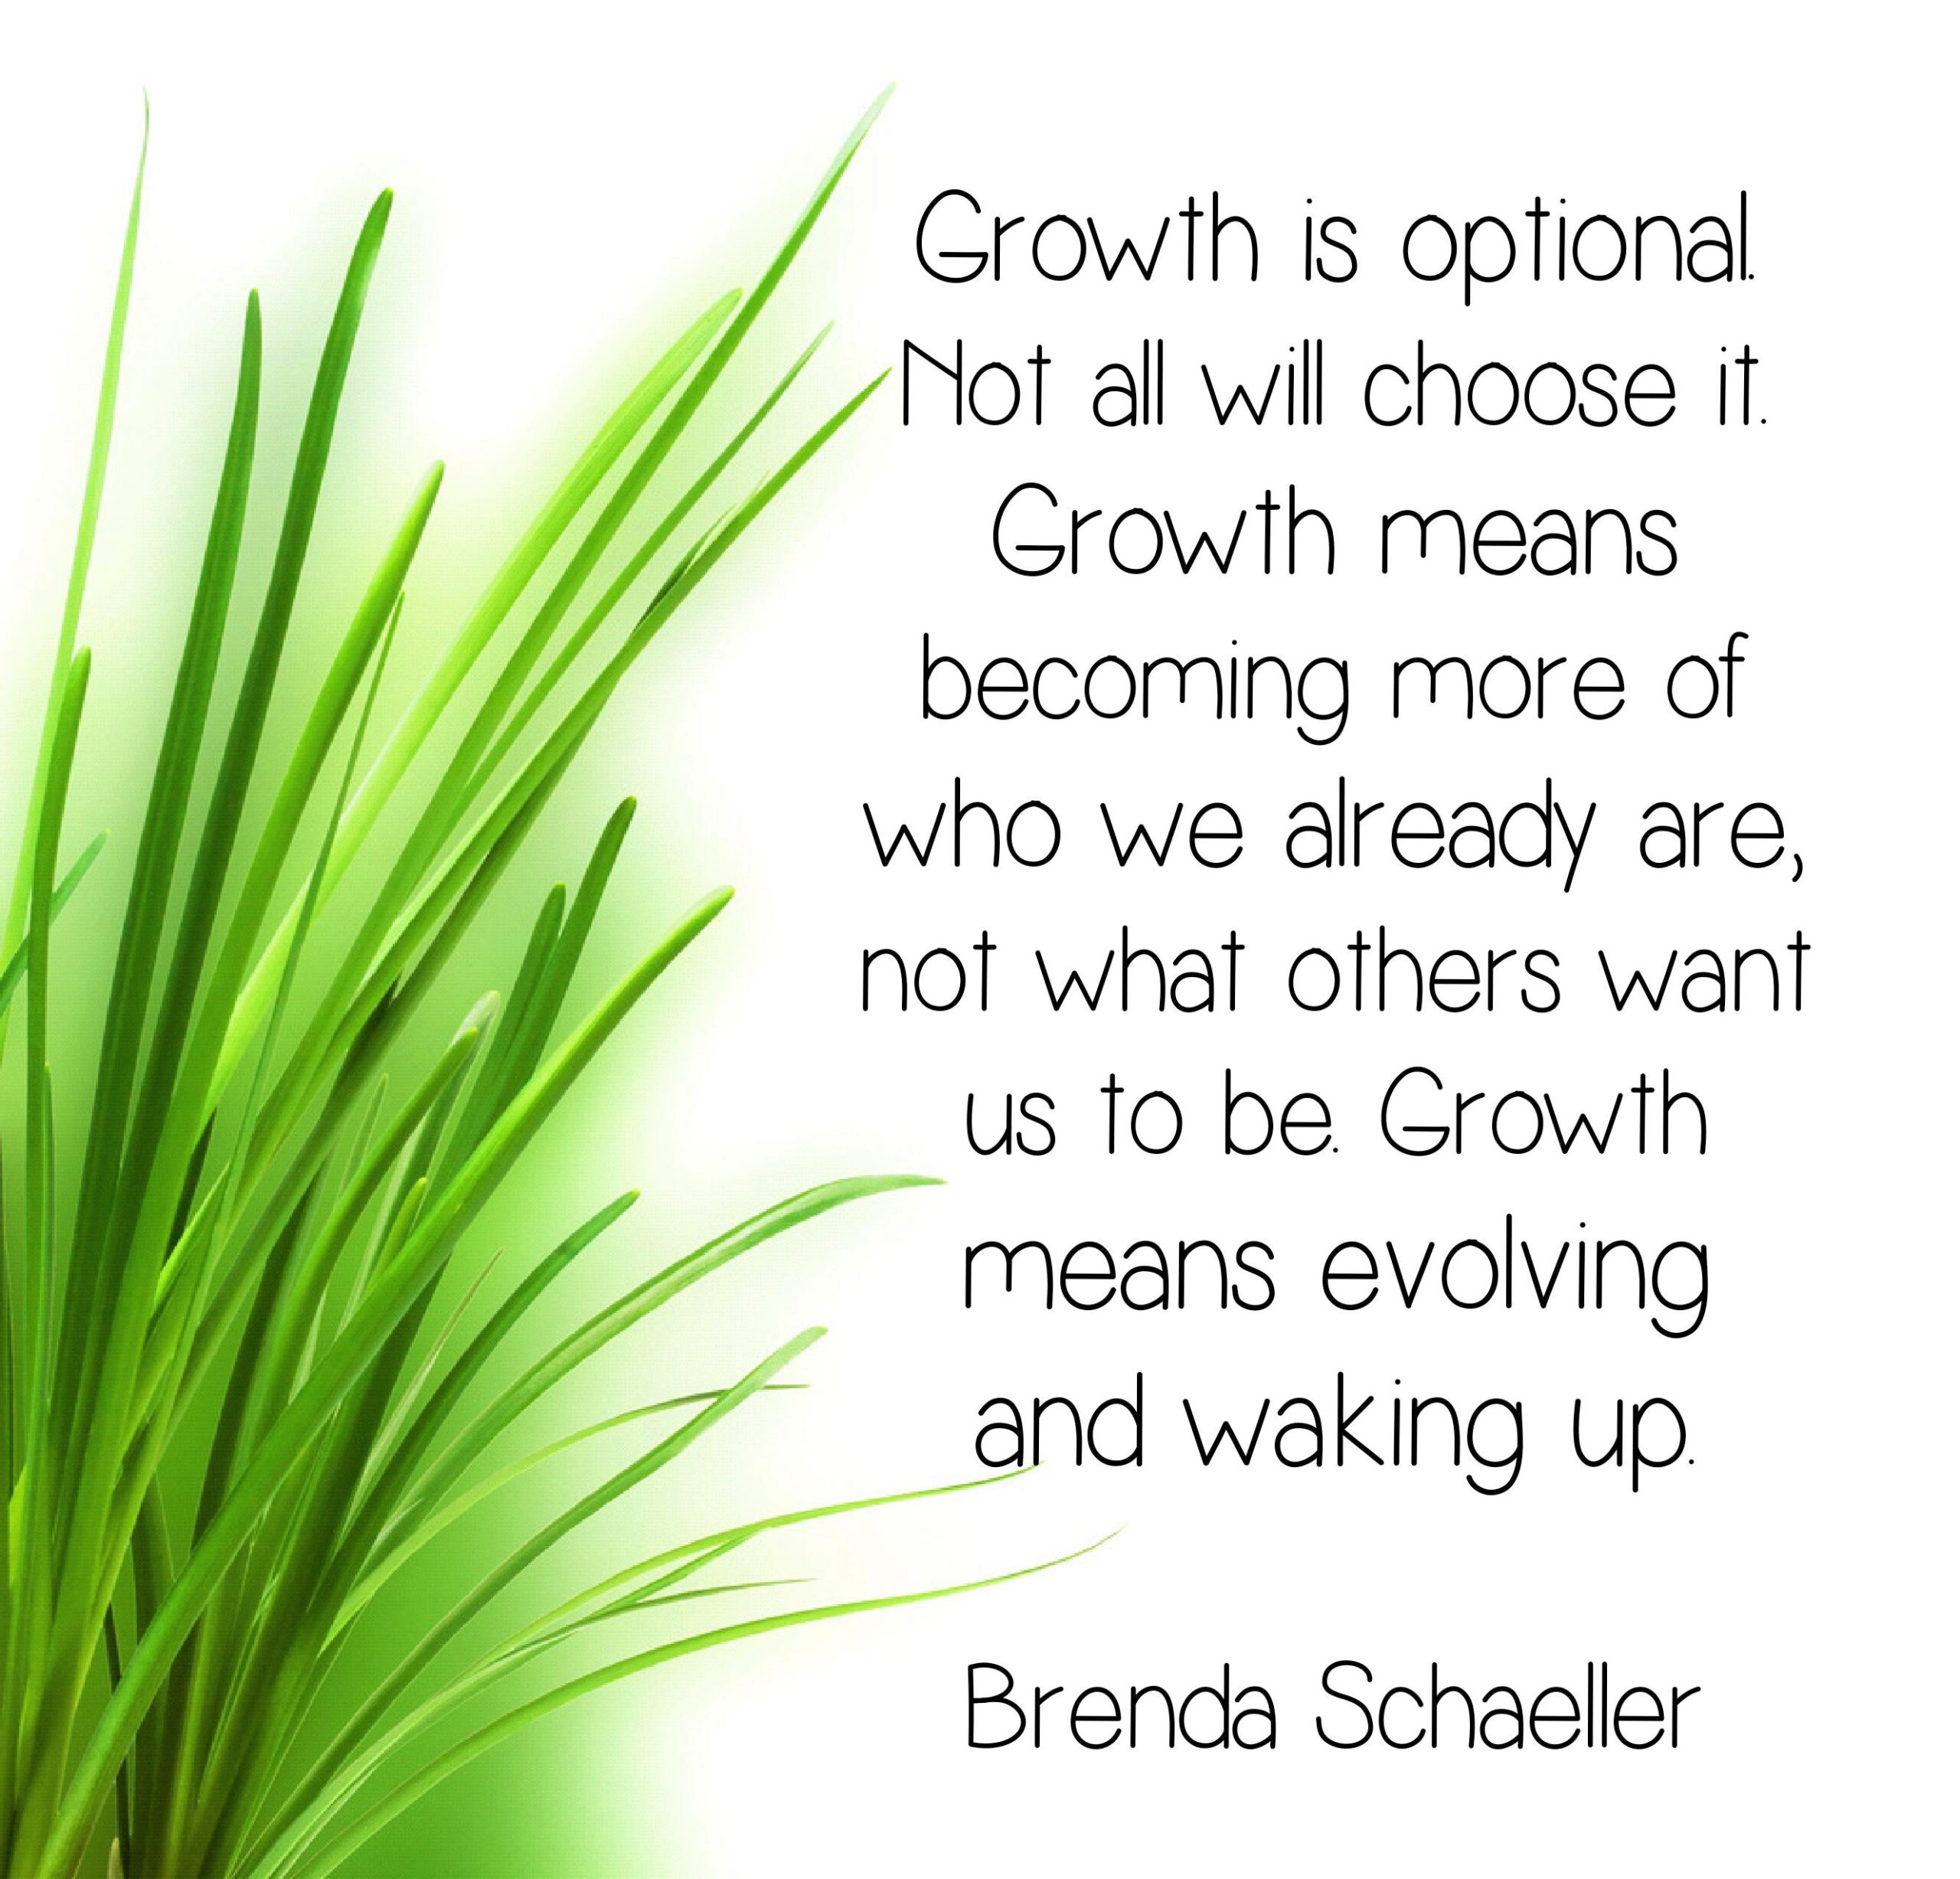 Growth is optional